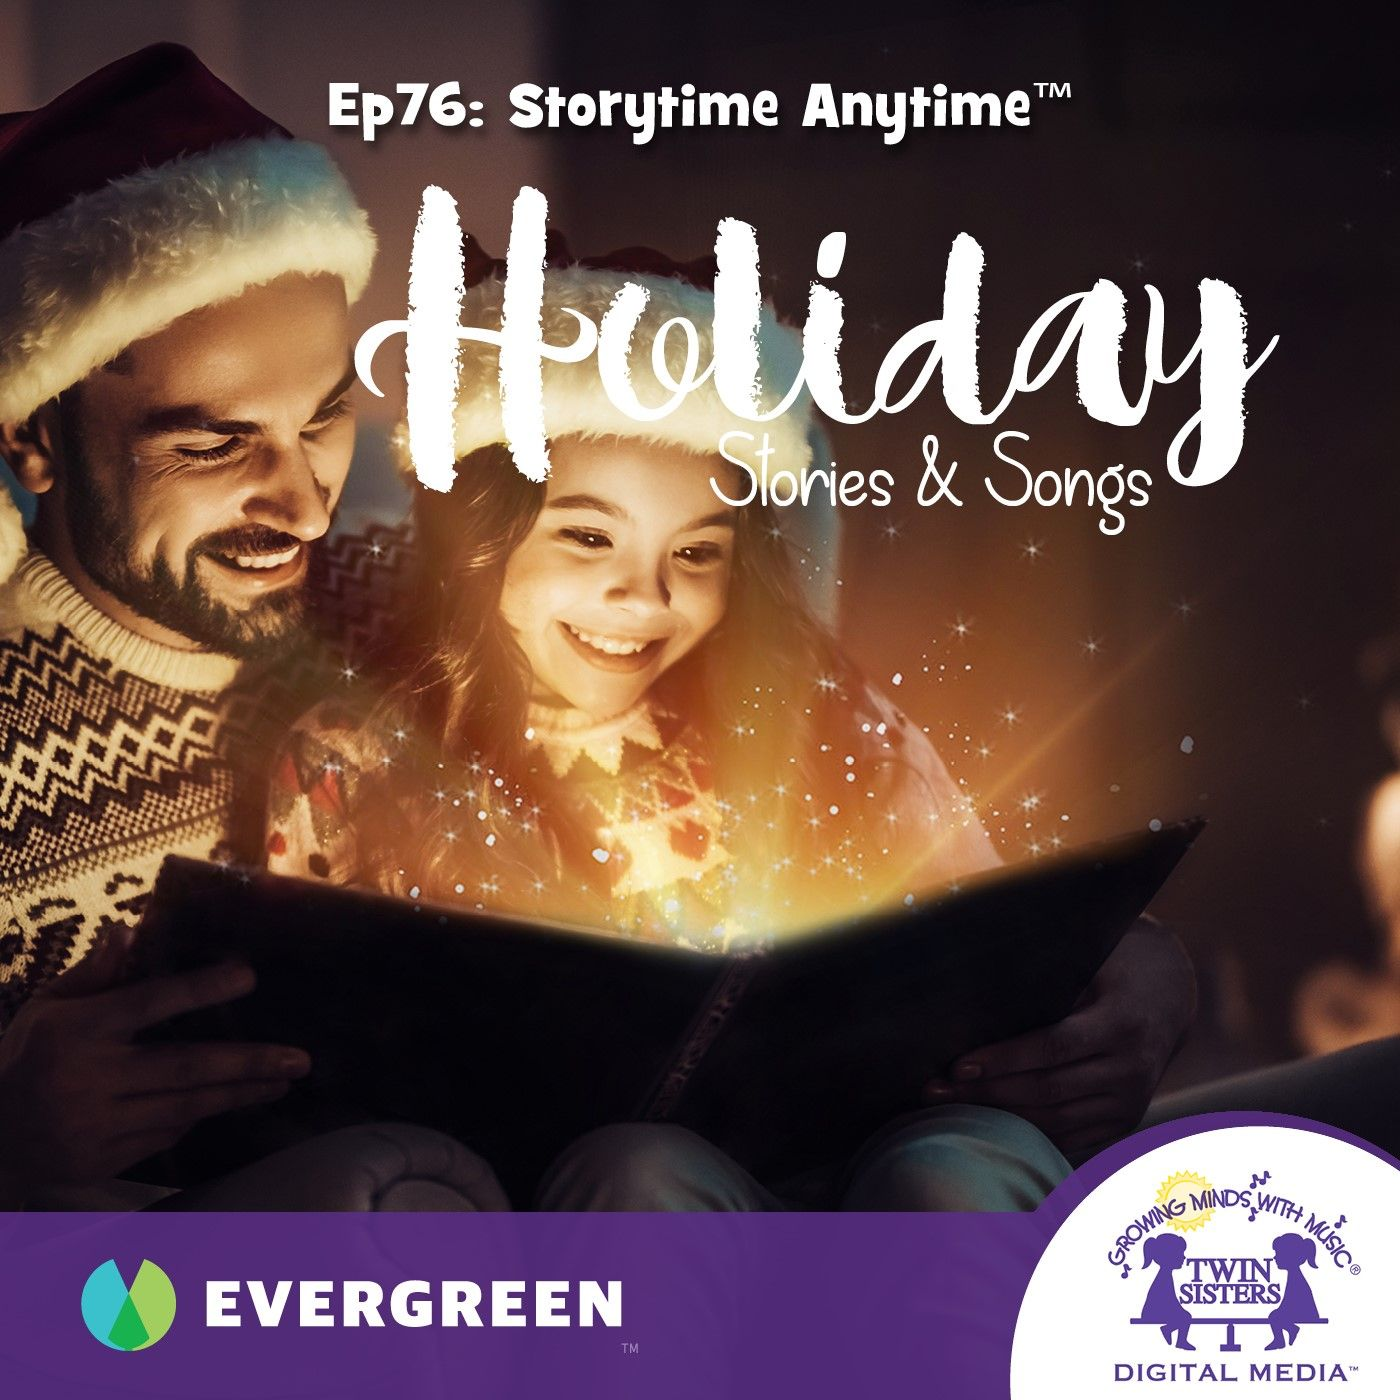 Holiday Stories and Songs